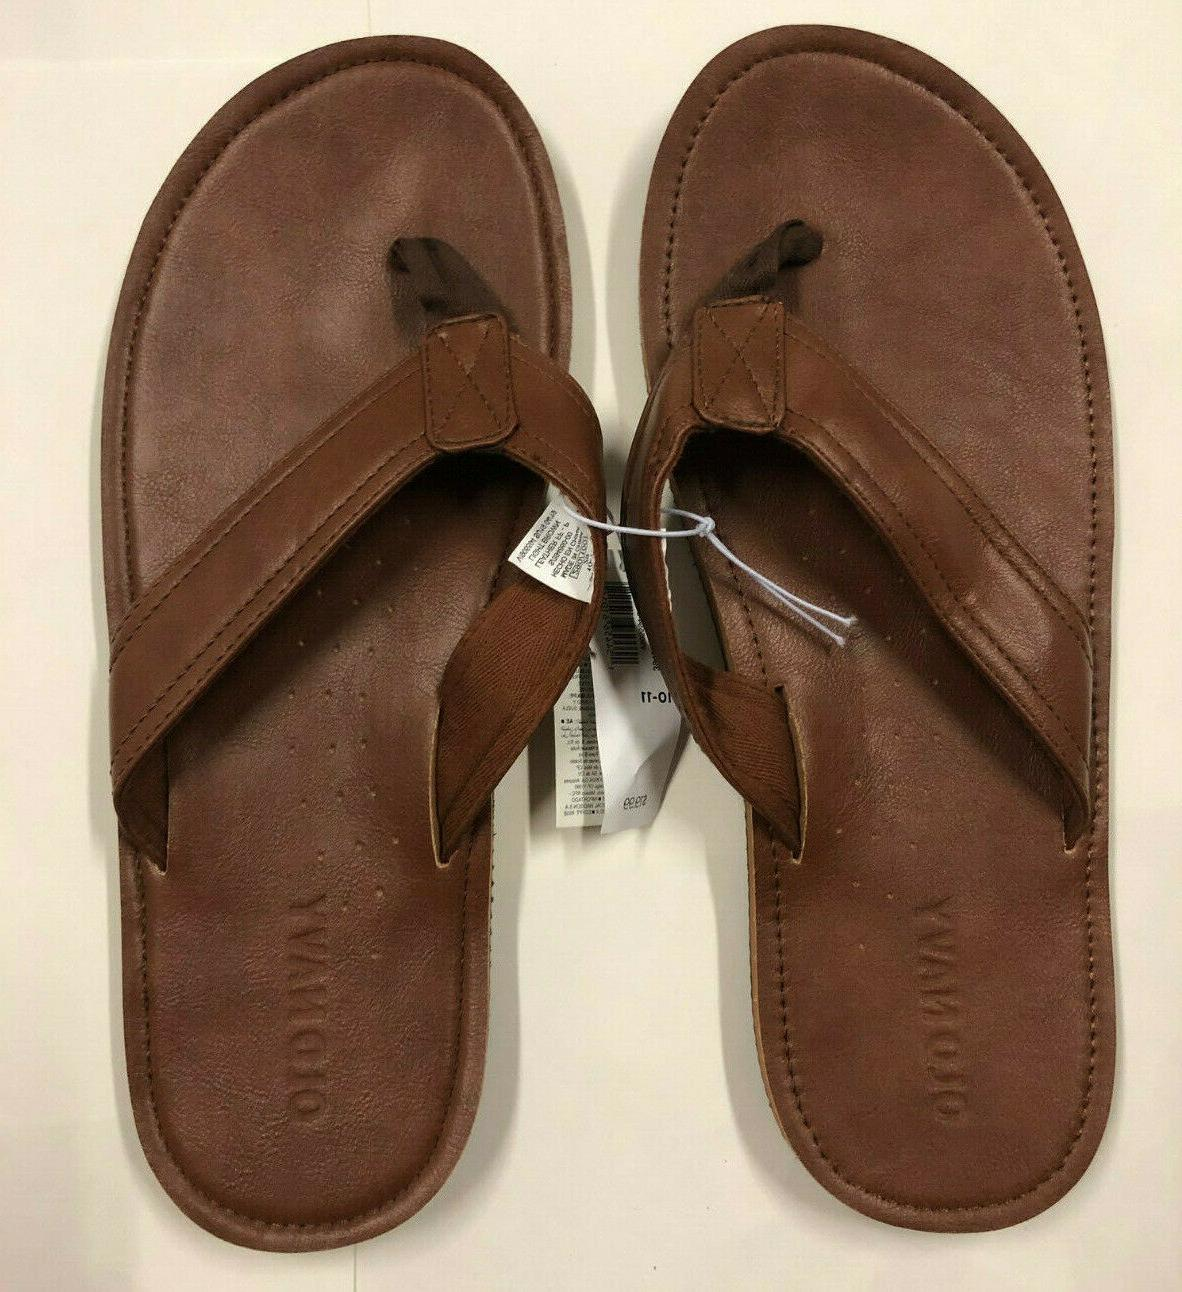 nwt mens brown leather thongs sandals flip